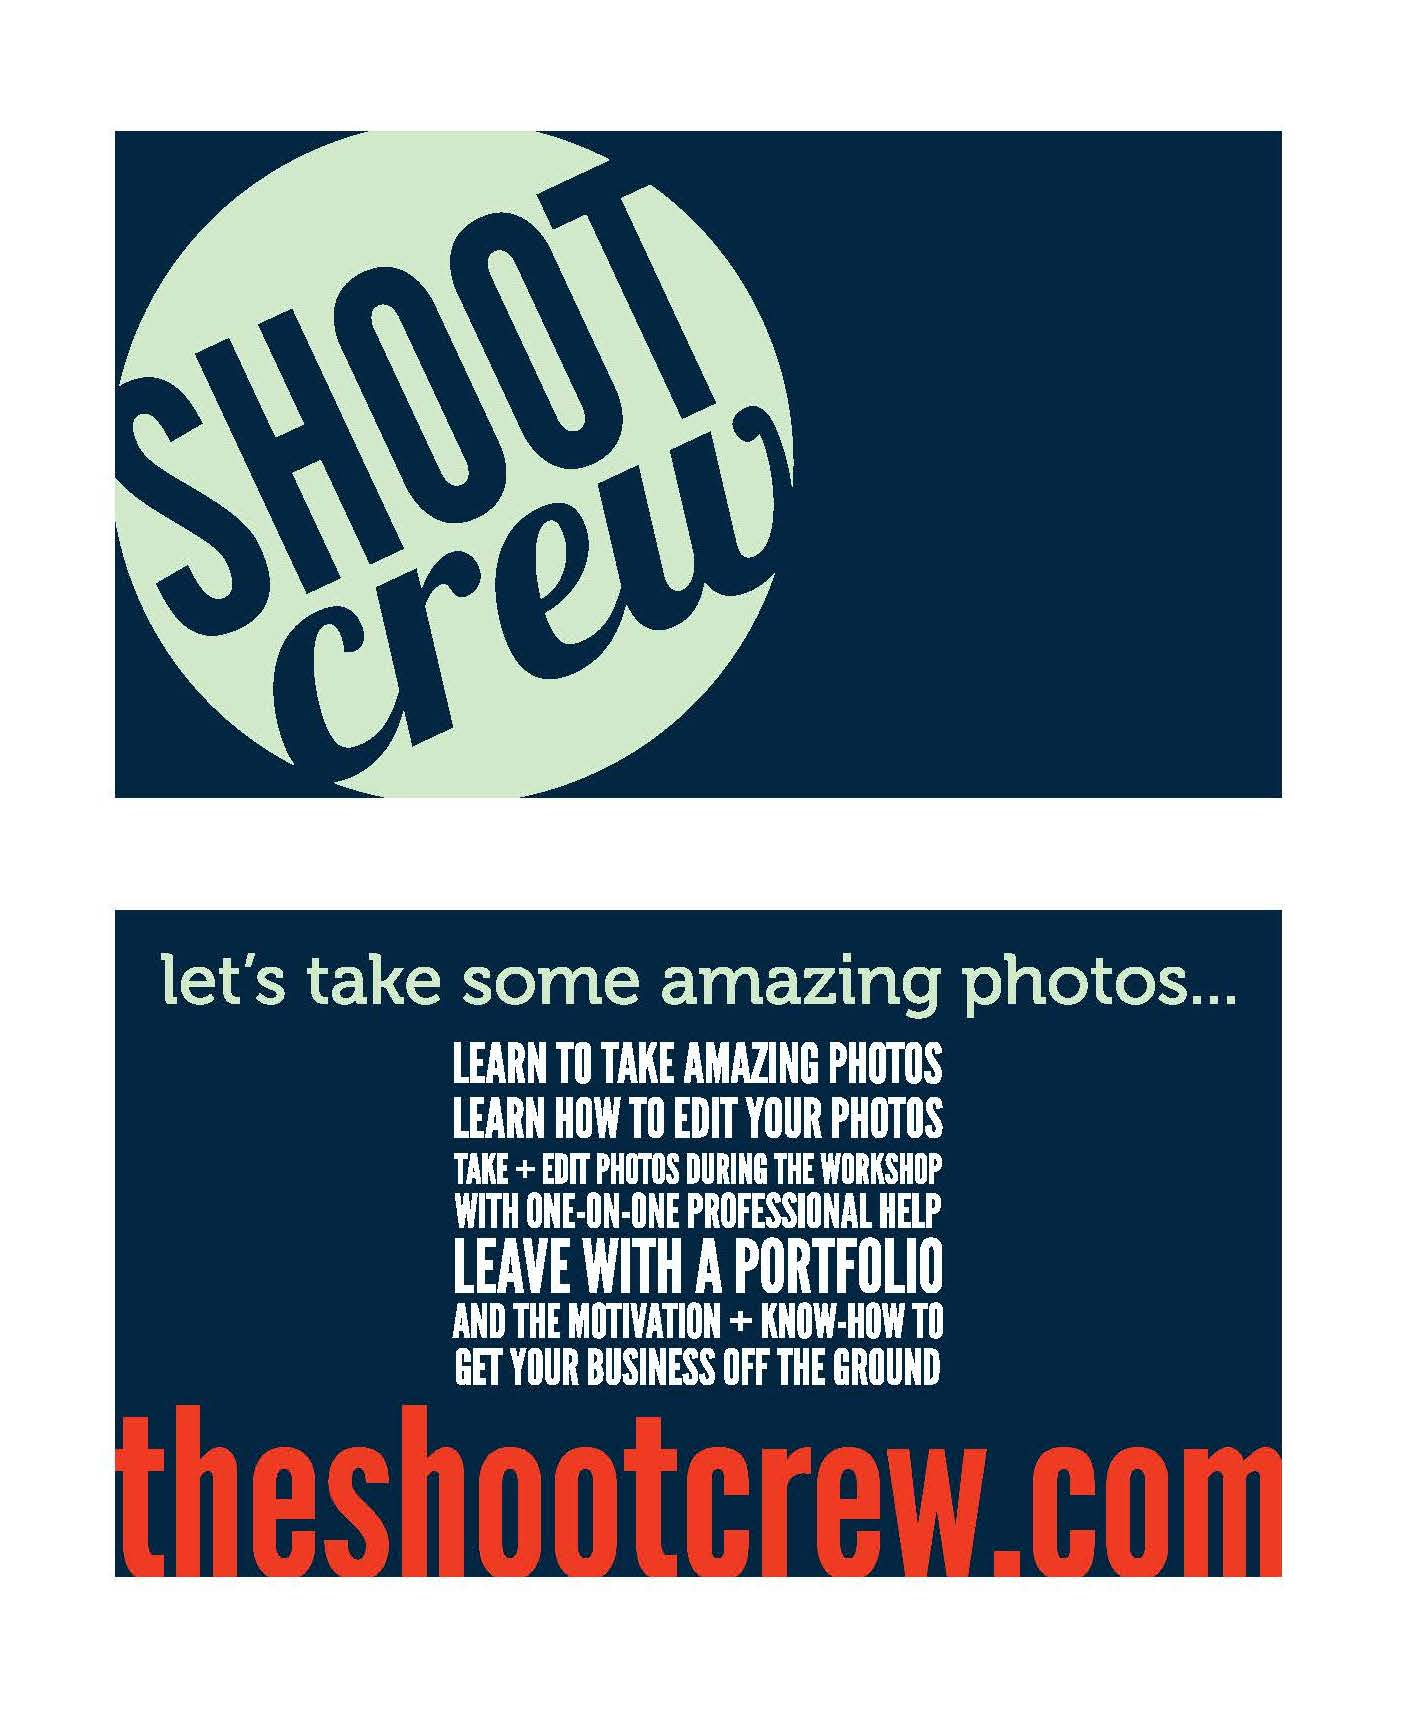 shootcrew-businesscards-draft.jpg